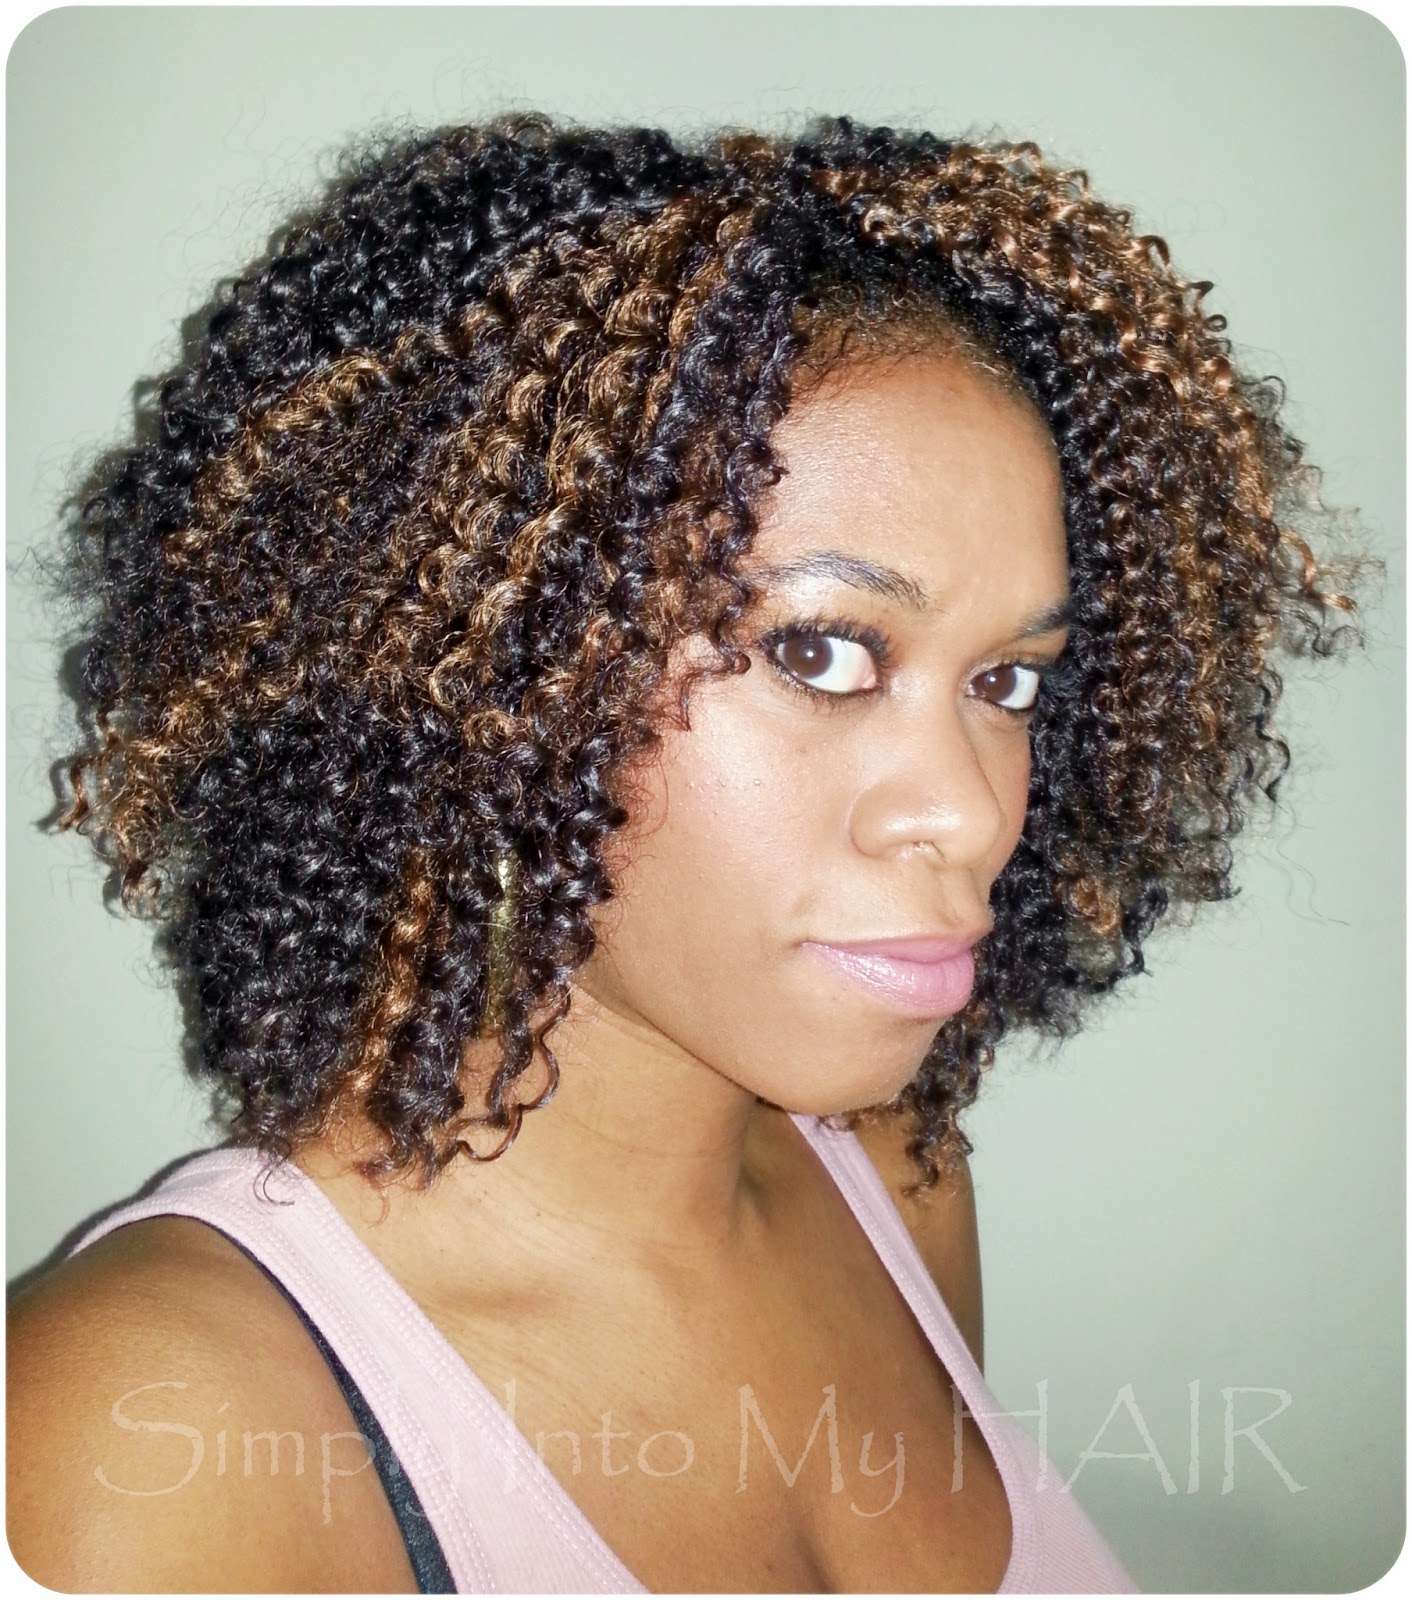 Crochet Braids Vacation : crochet braids crochet braids with marley hair bantu knots crochet